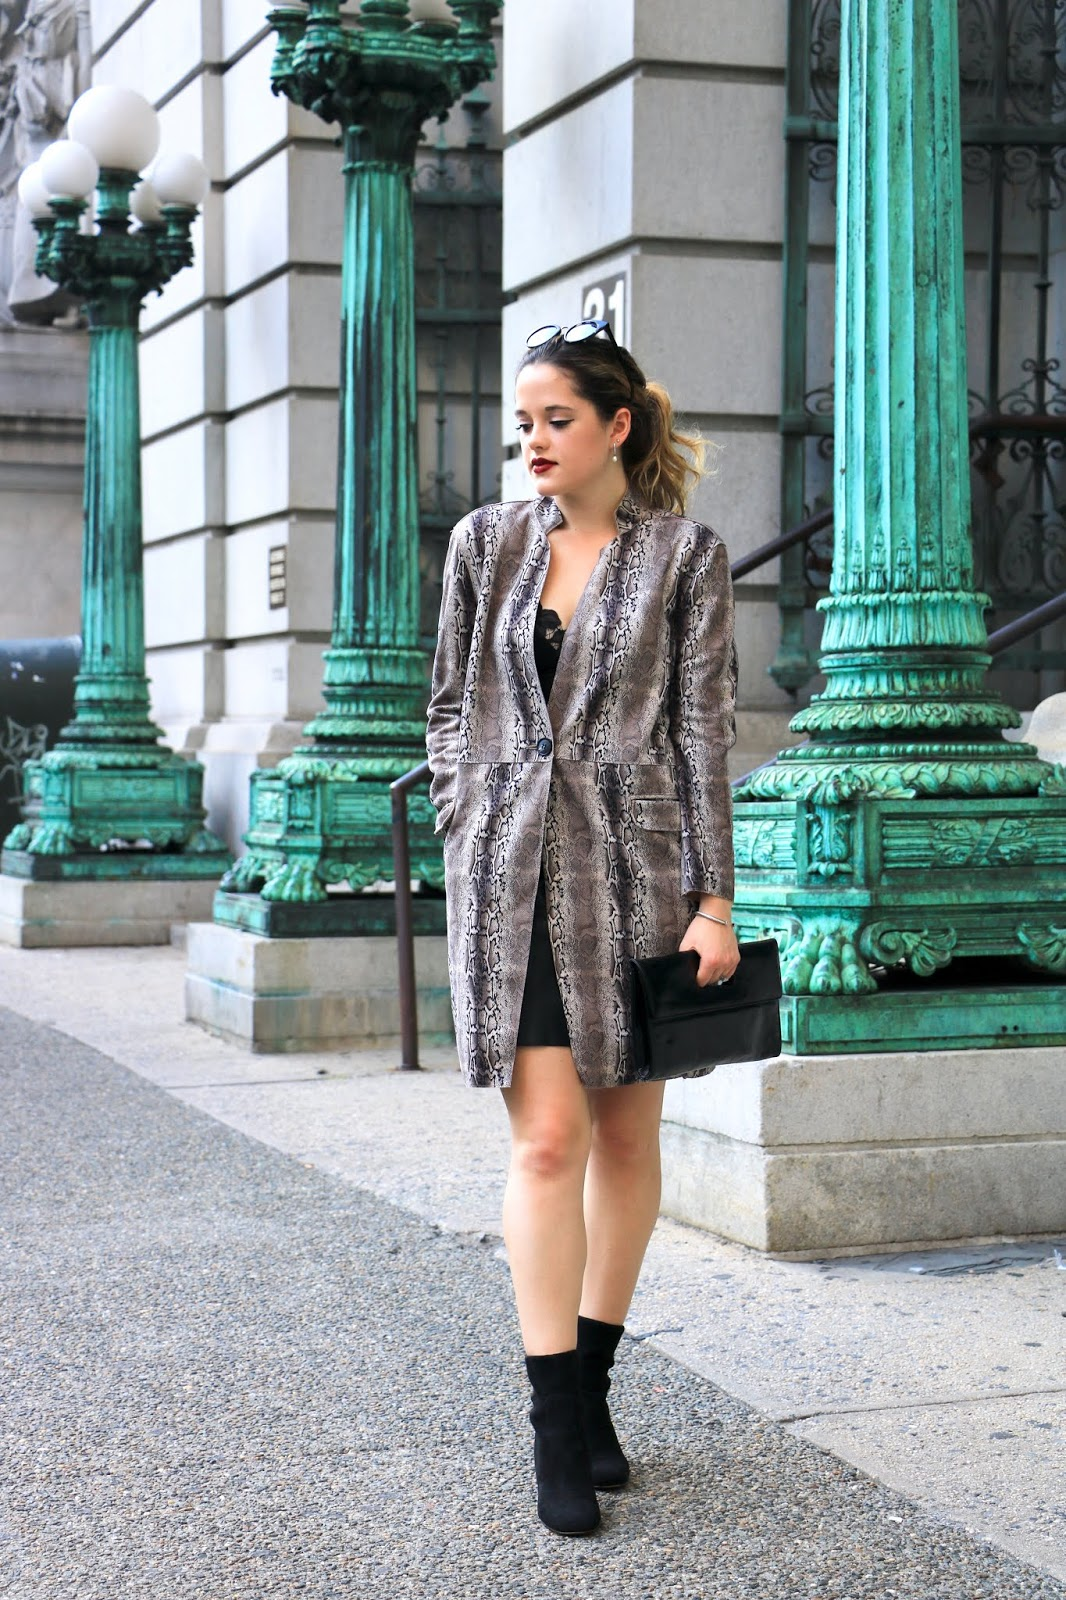 Nyc fashion blogger Kathleen Harper wearing a work outfit for fall.